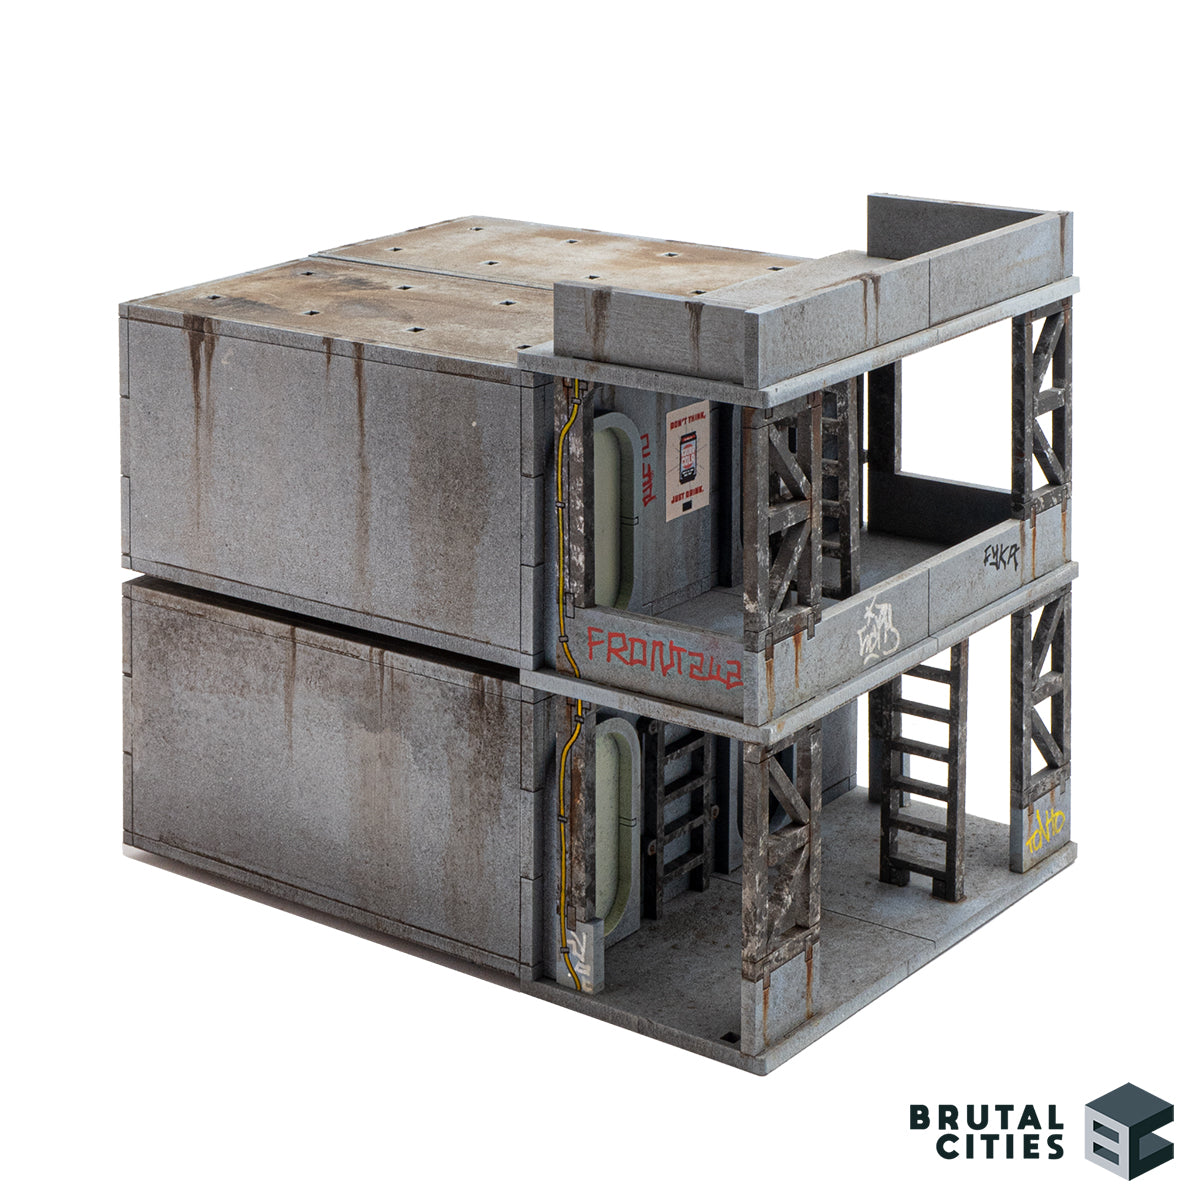 Capsule housing and scaffolding terrain combined together